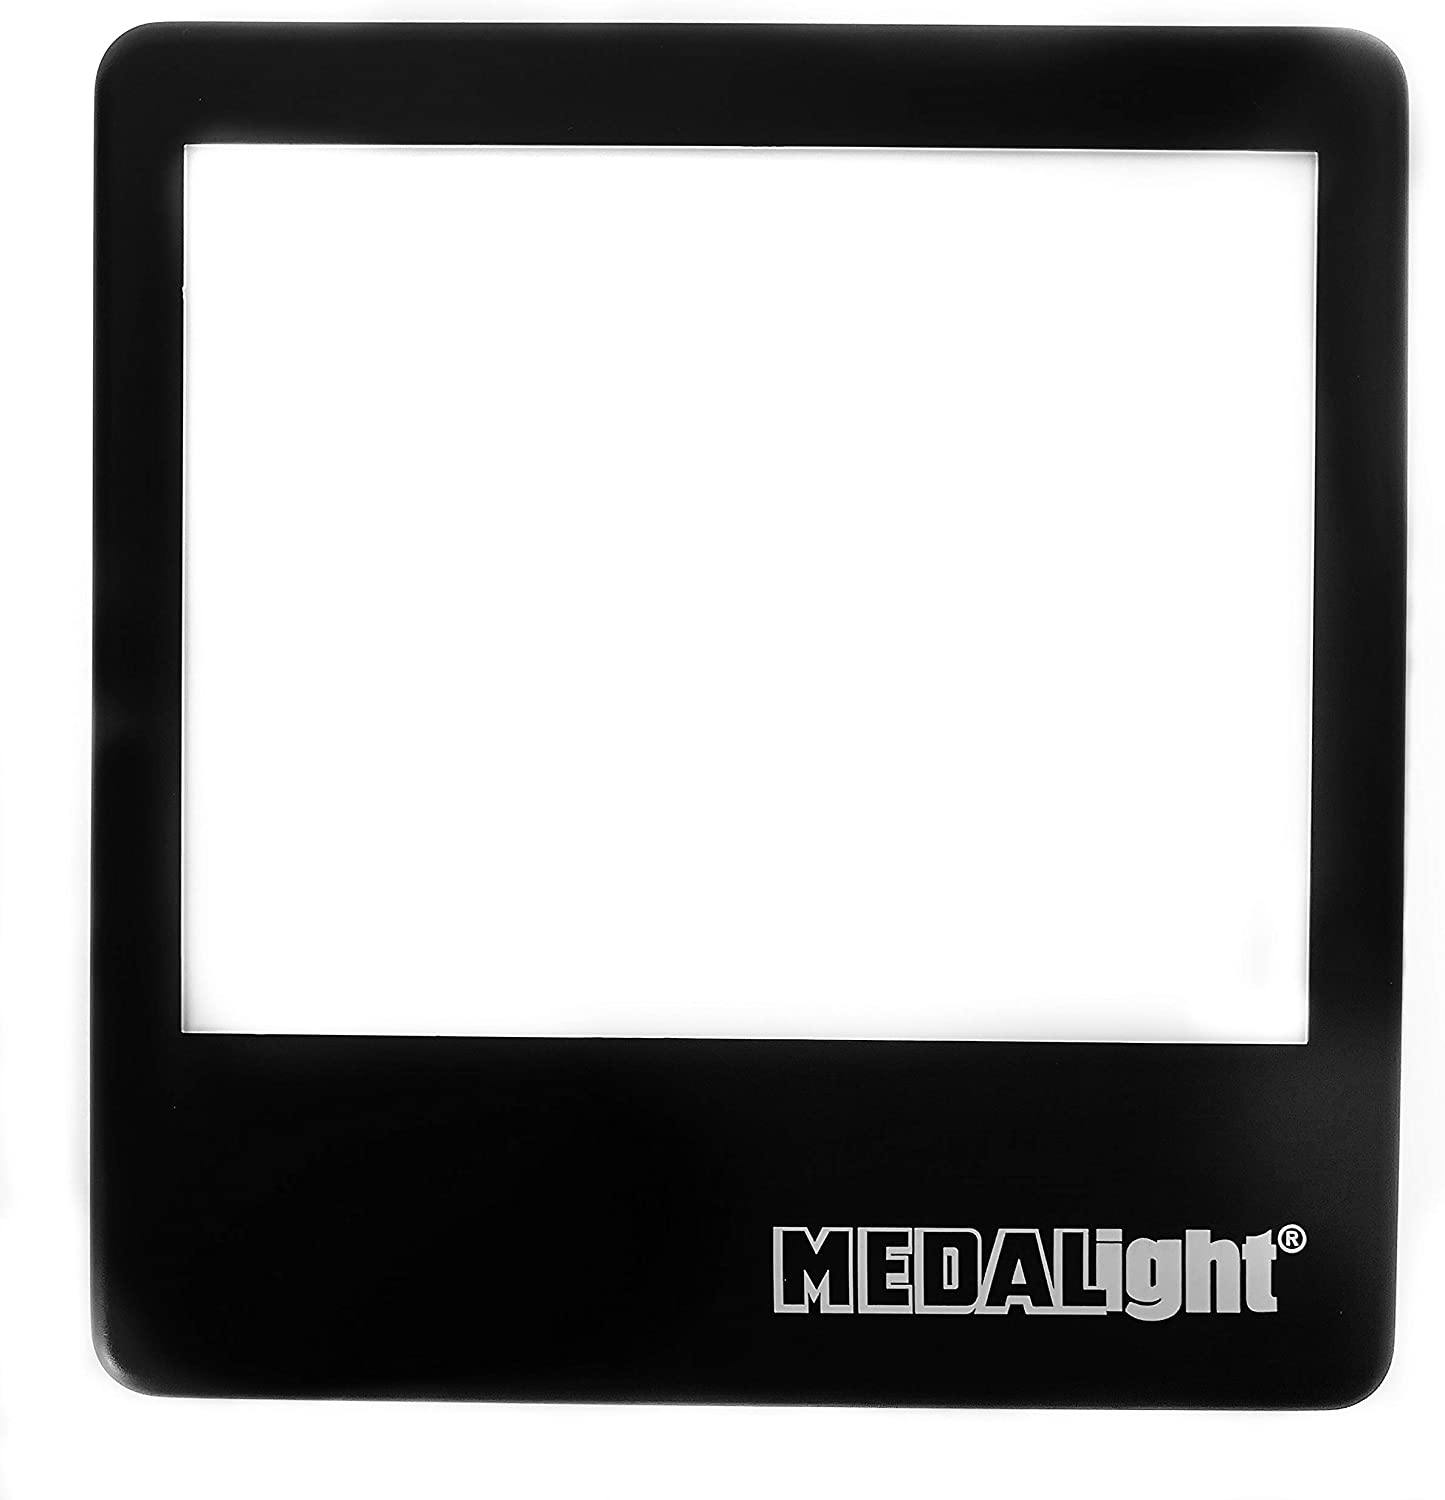 Medalight LP-100N 5 x 4 Inches Ultra-Thin LED Light Panel Negative and Slide Viewer